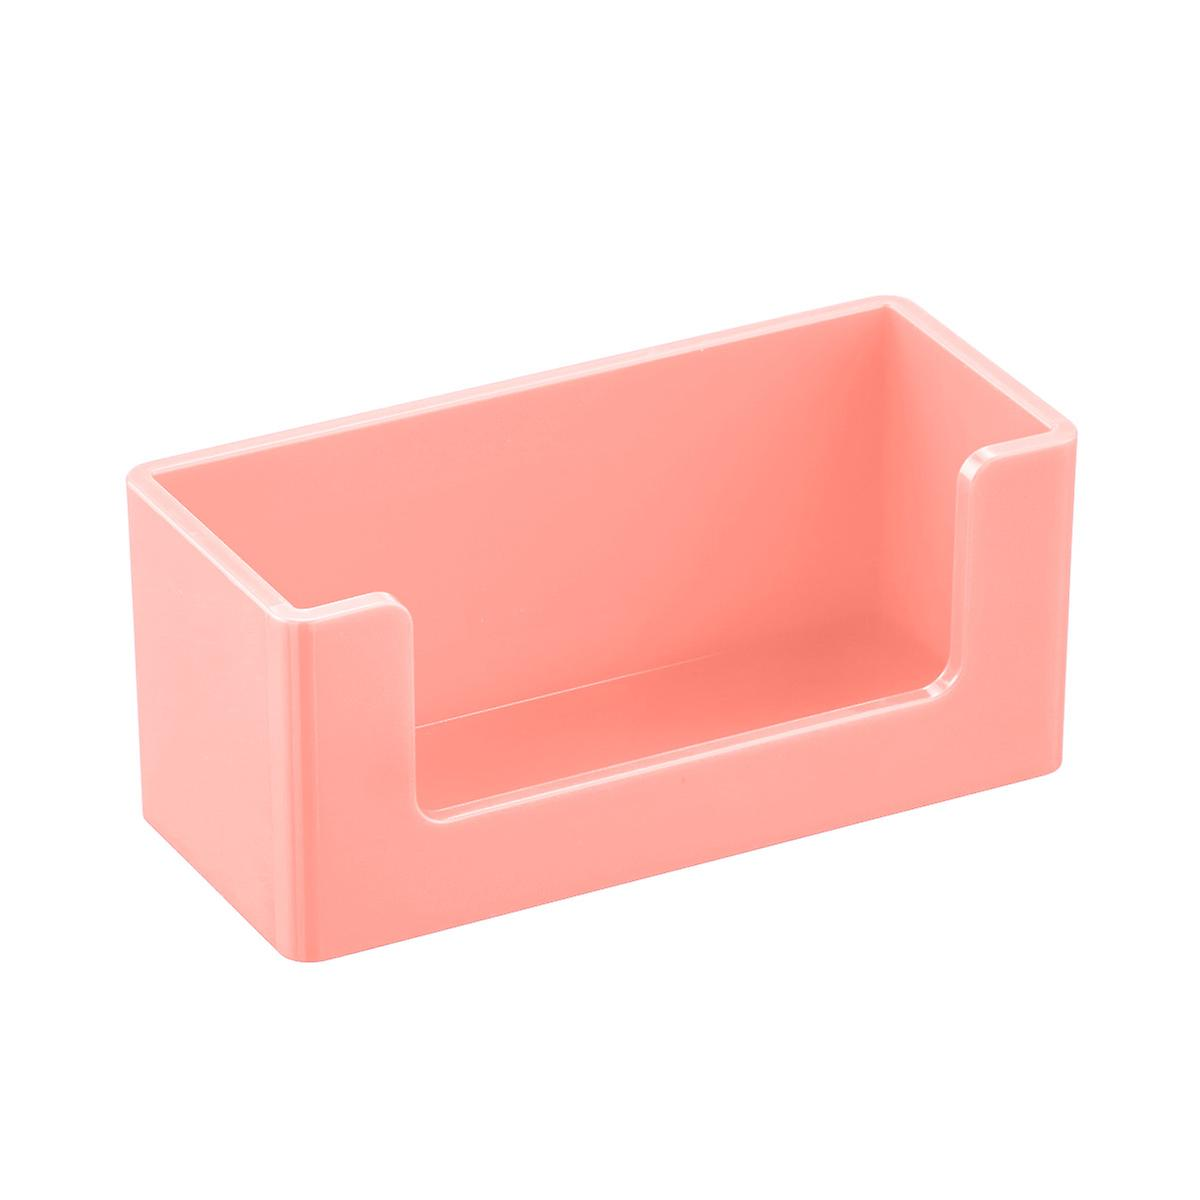 blush poppin business card holder - Pink Card Holder